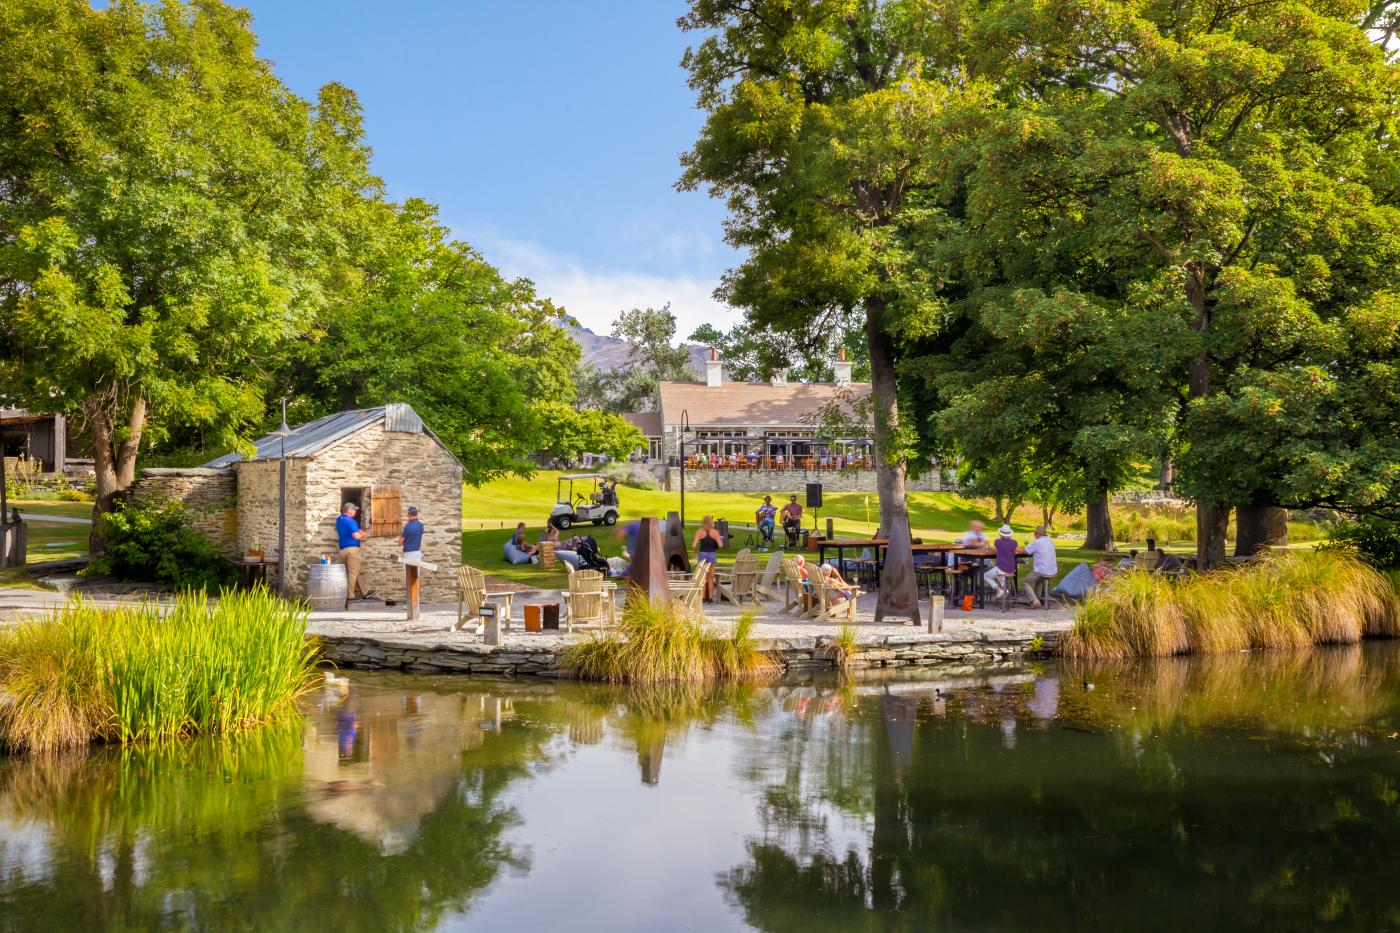 Live music and outdoor dining at Smithy's Smokehouse, Millbrook